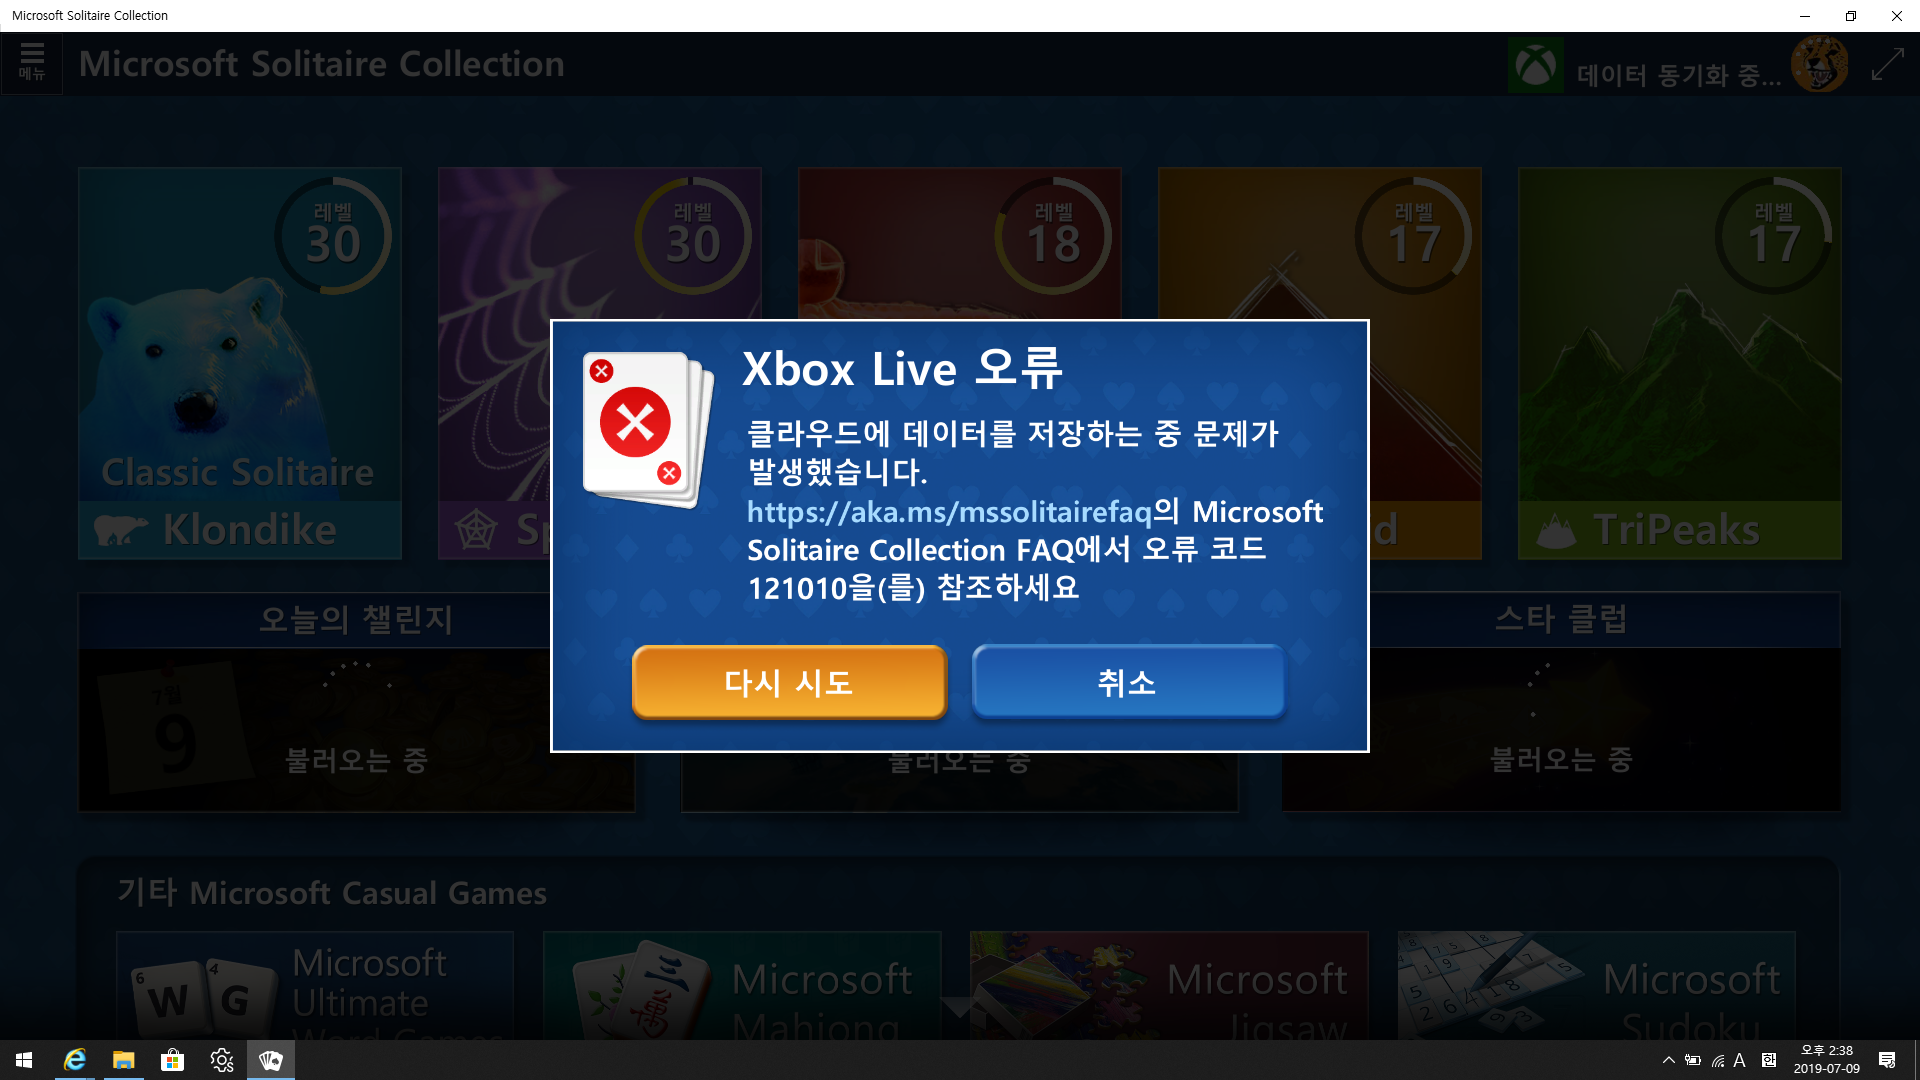 Microsoft Solitaire Collection 오류[Translation-Microsoft solitaire collection error] [IMG]